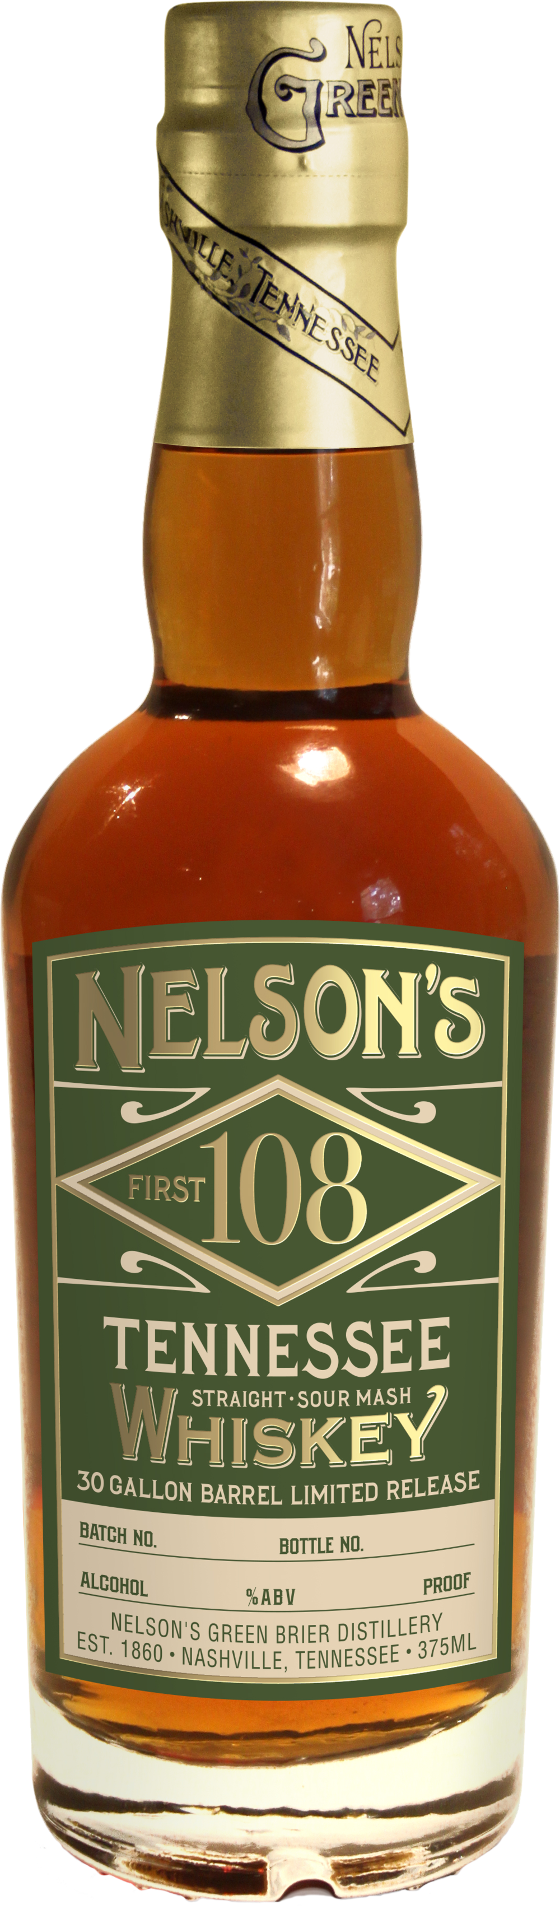 7. Nelson's First 108 Tennessee Whiskey